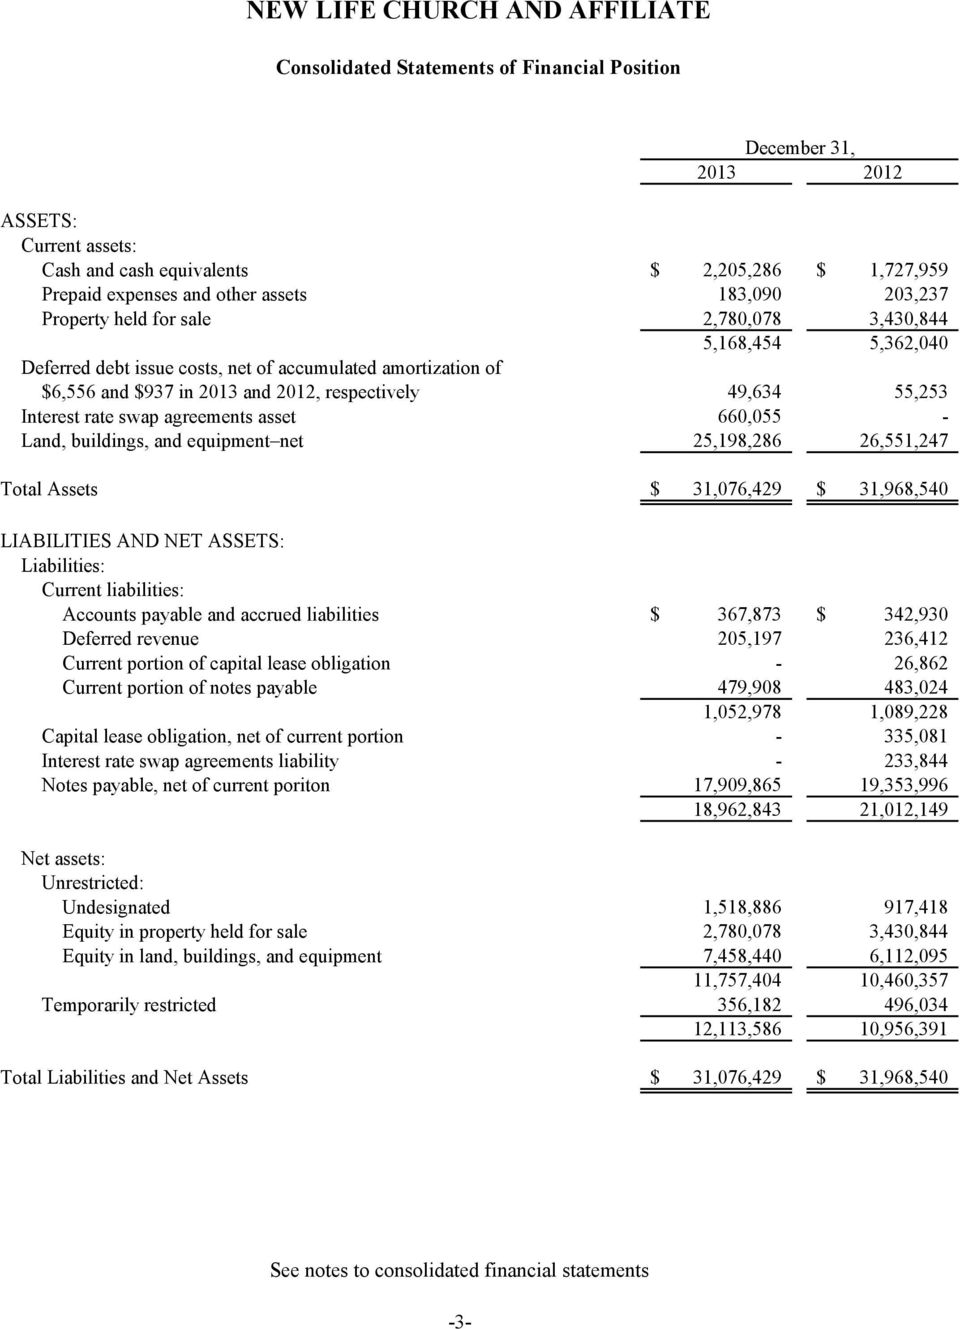 agreements asset 660,055 - Land, buildings, and equipment net 25,198,286 26,551,247 Total Assets $ 31,076,429 $ 31,968,540 LIABILITIES AND NET ASSETS: Liabilities: Current liabilities: Accounts